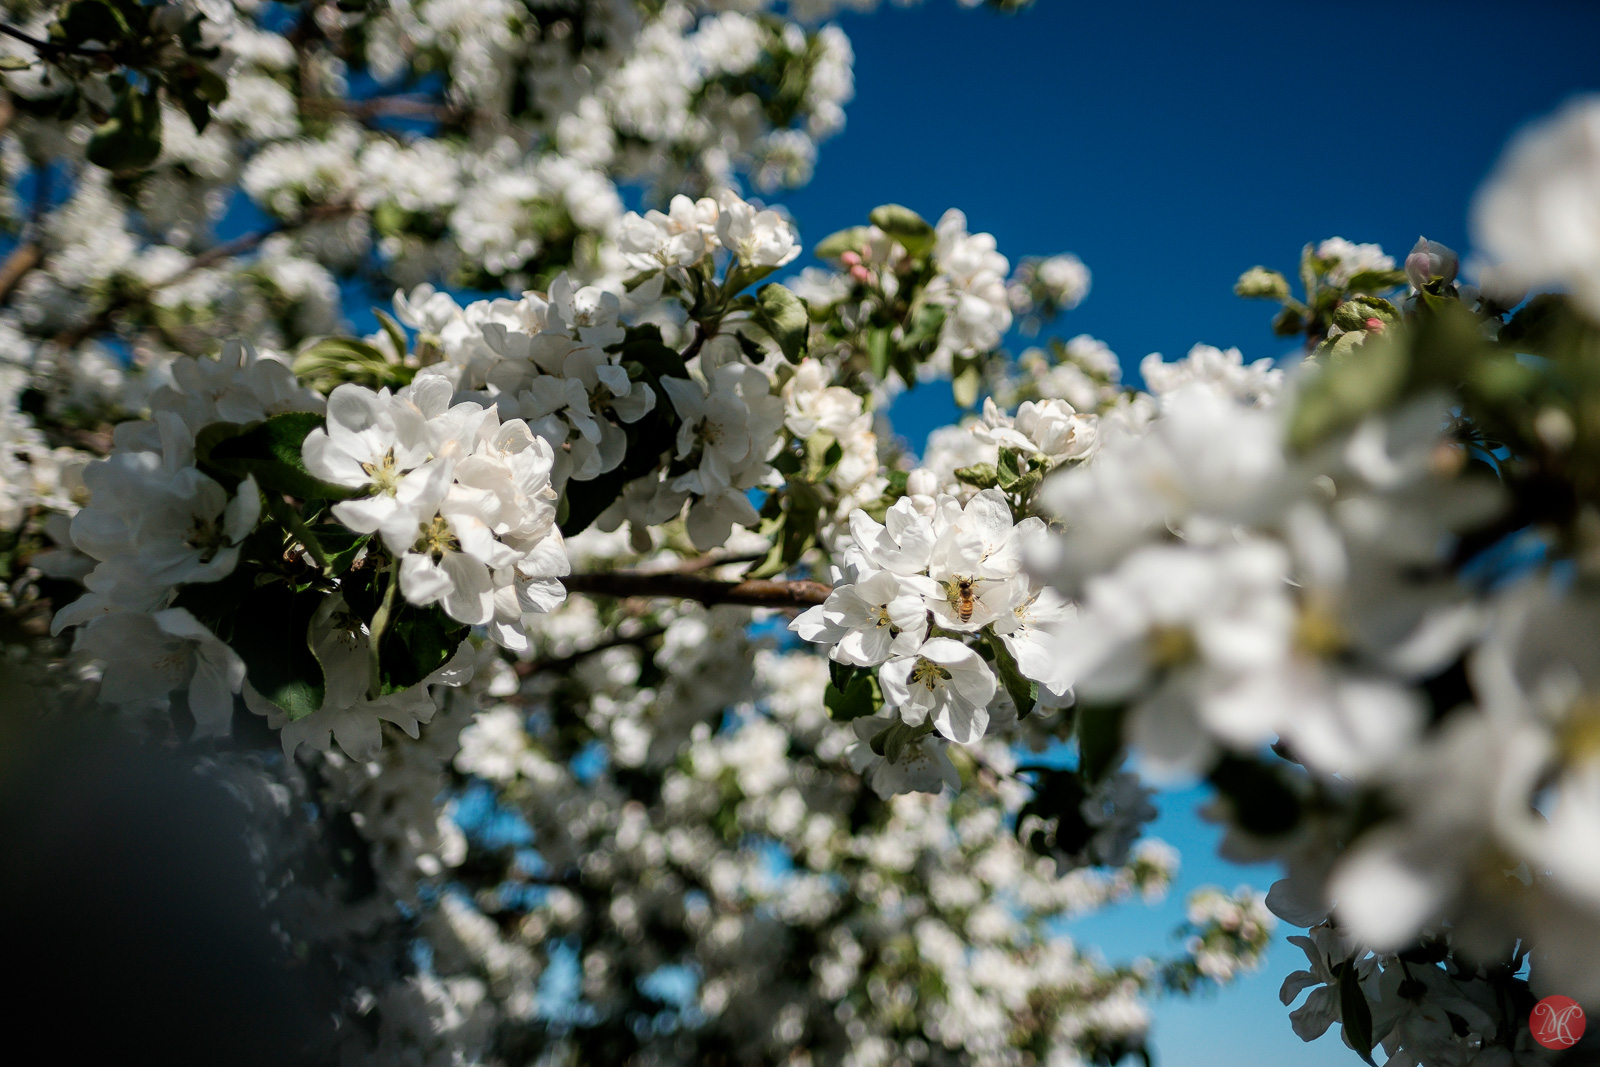 Fuji 16mm f1.4 Apple tree in bloom